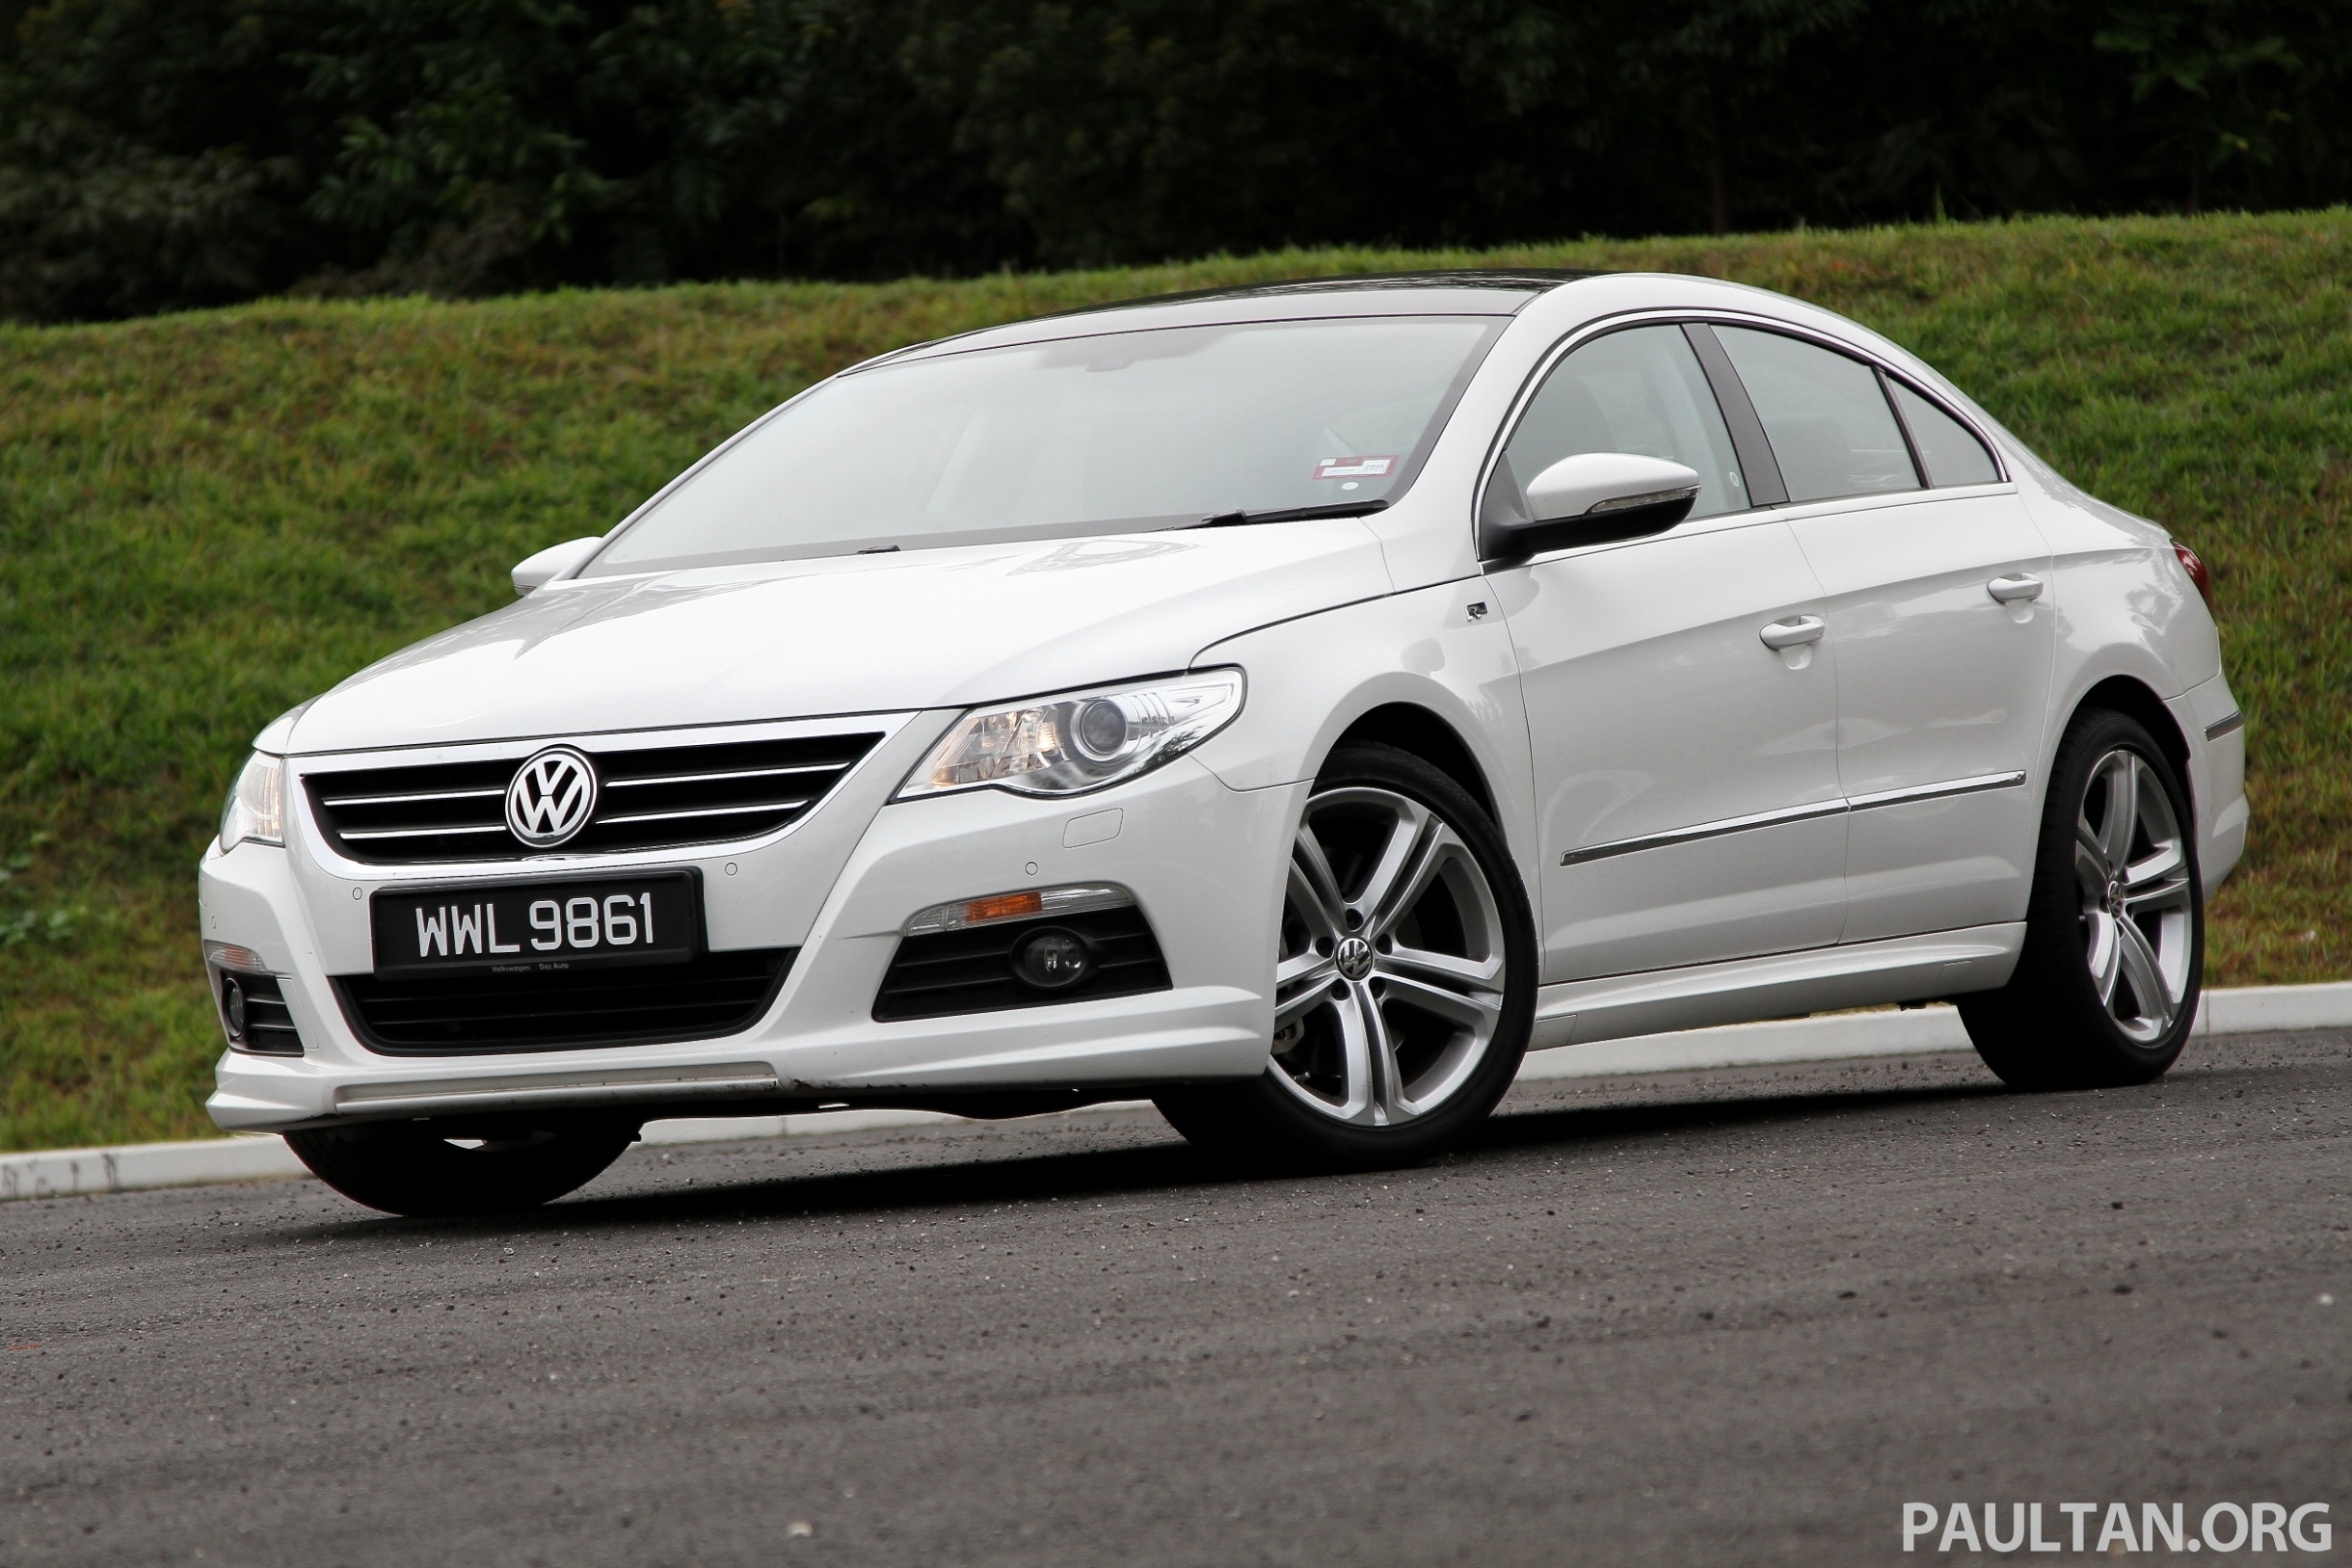 Volkswagen Passat CC 3.6 2012 photo - 8